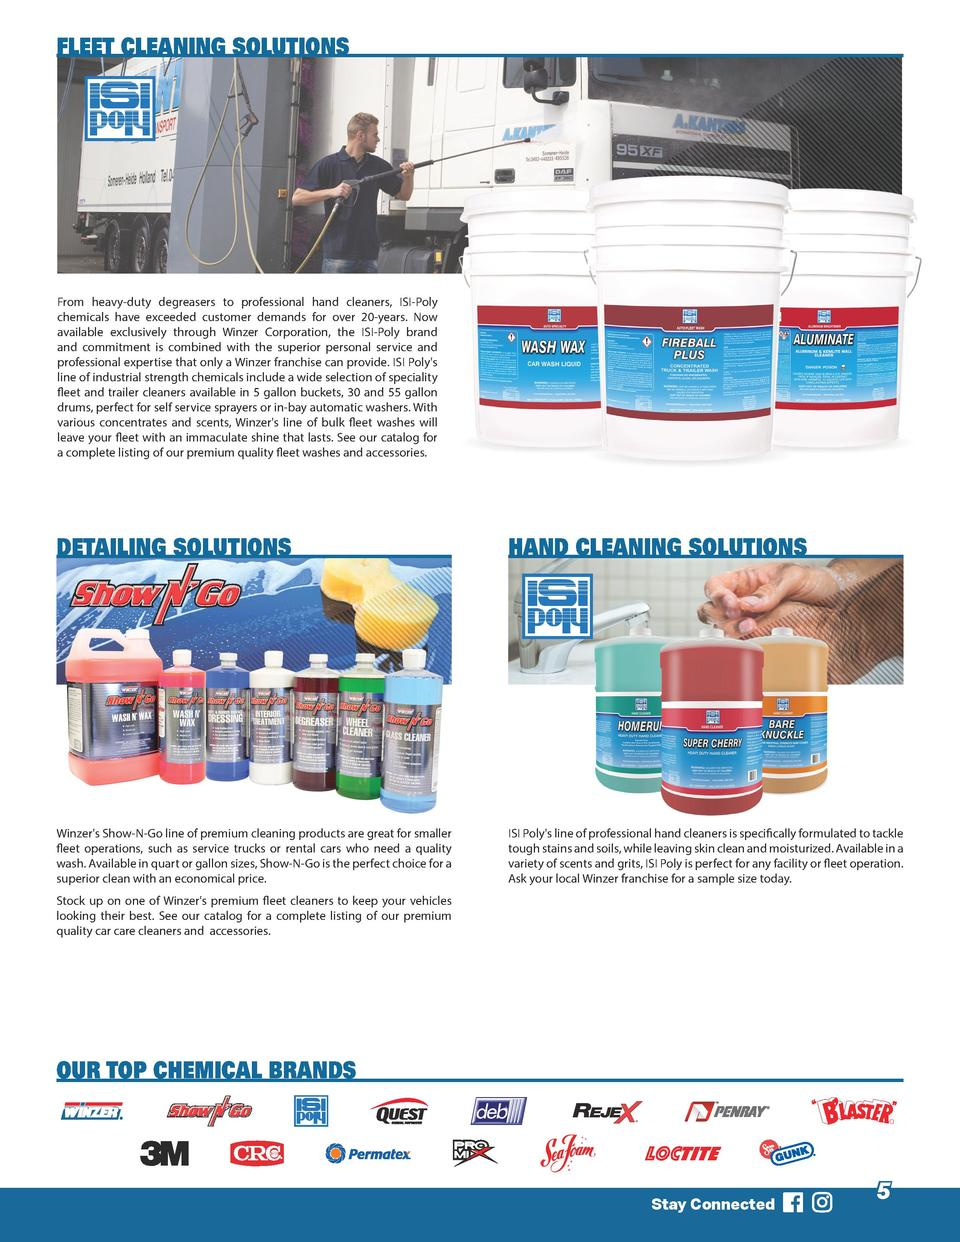 FLEET CLEANING SOLUTIONS  From heavy-duty degreasers to professional hand cleaners, ISI-Poly chemicals have exceeded custo...